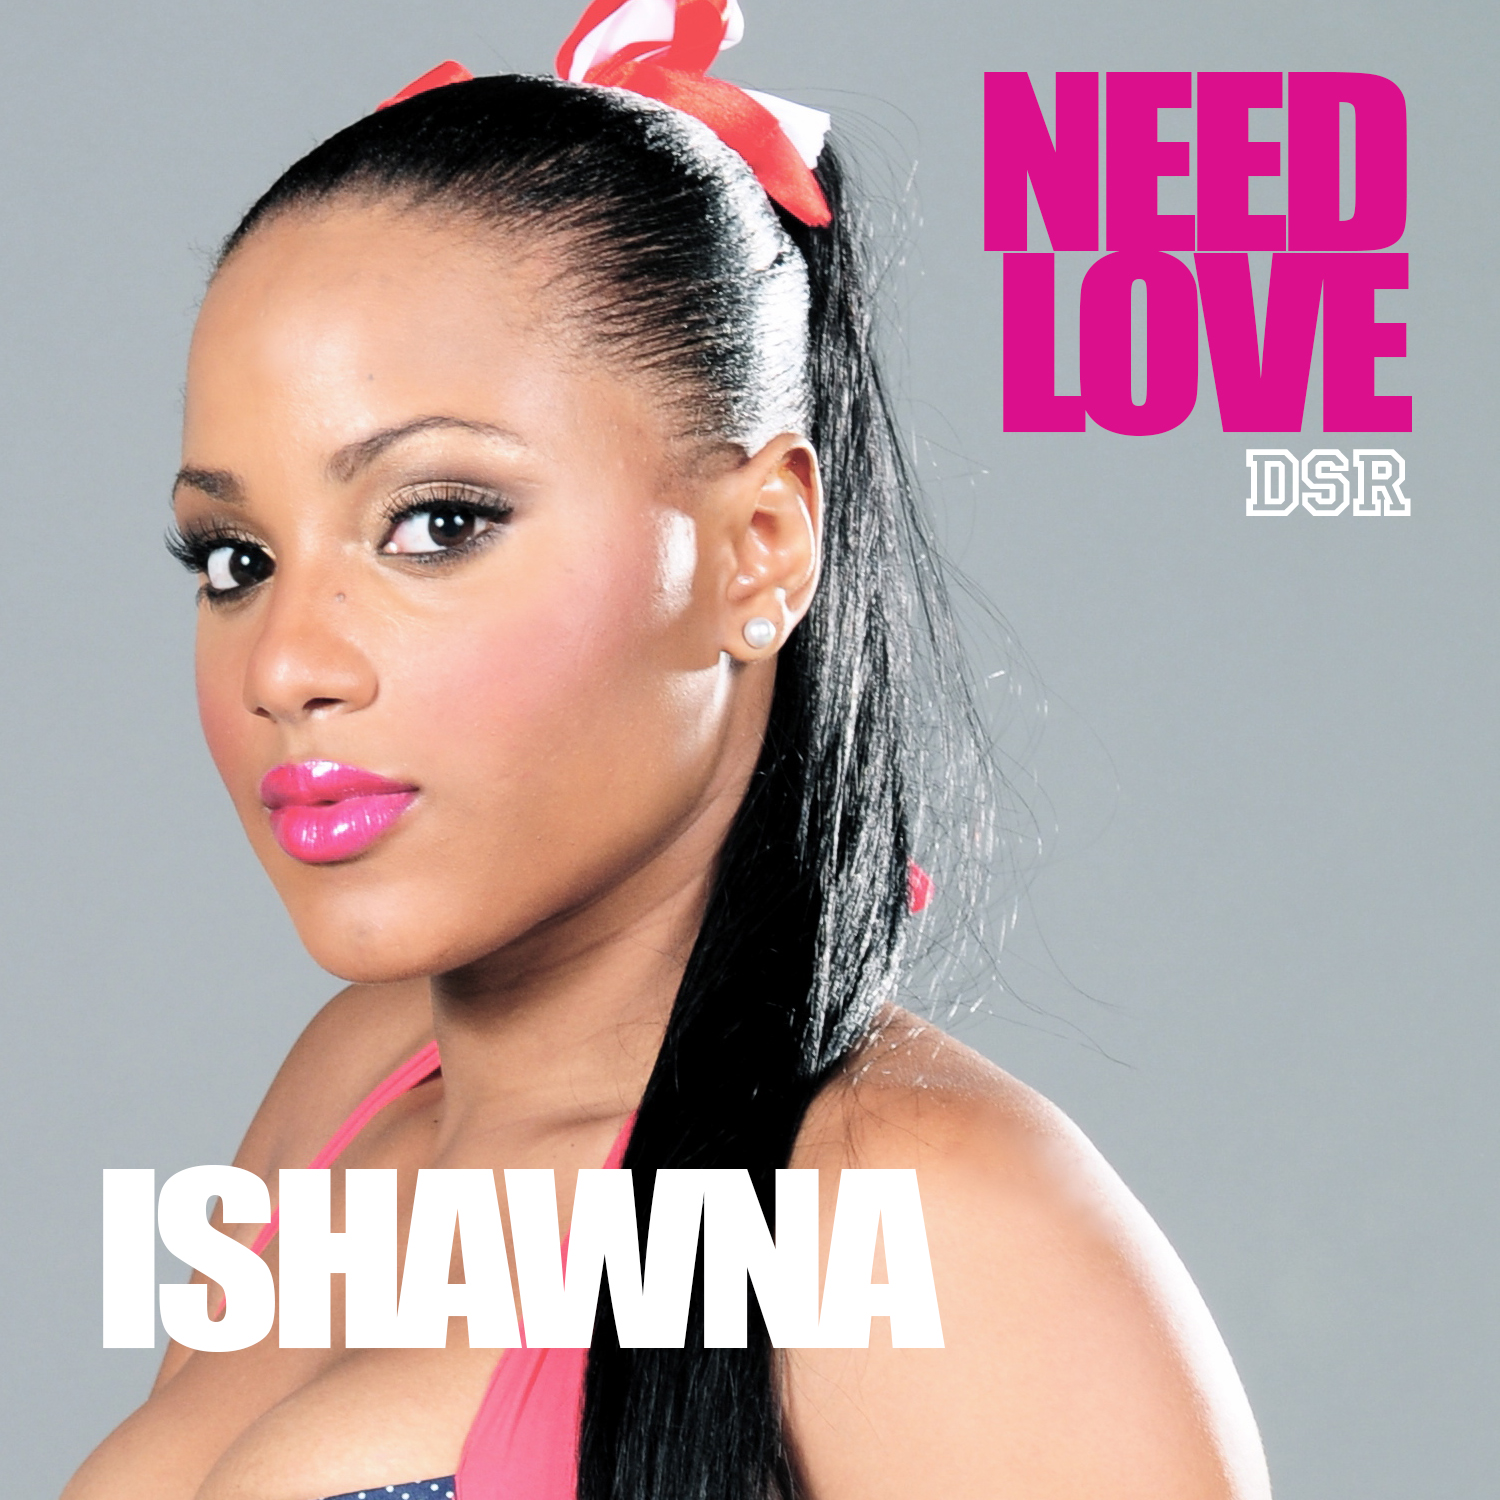 ISHAWNA-NEED-LOVE-DOWNSOUND-RECORDS-COVER